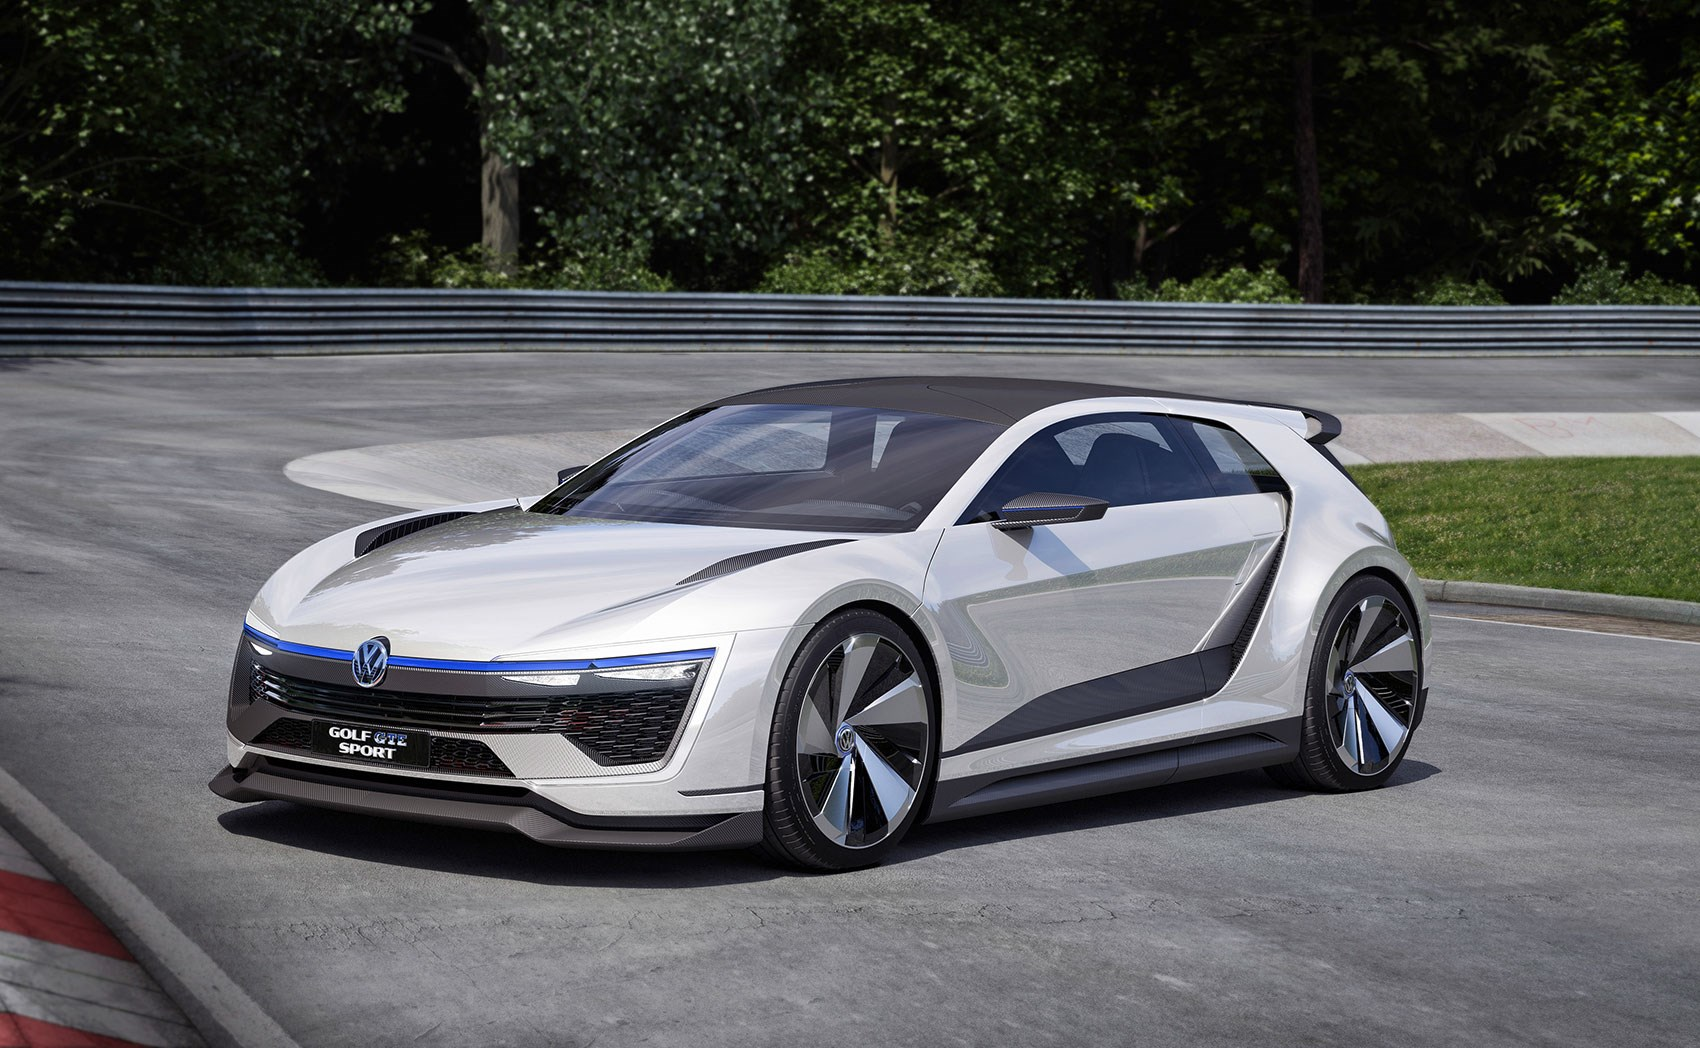 vw golf gte sport the outrageous carbon bodied 400bhp. Black Bedroom Furniture Sets. Home Design Ideas